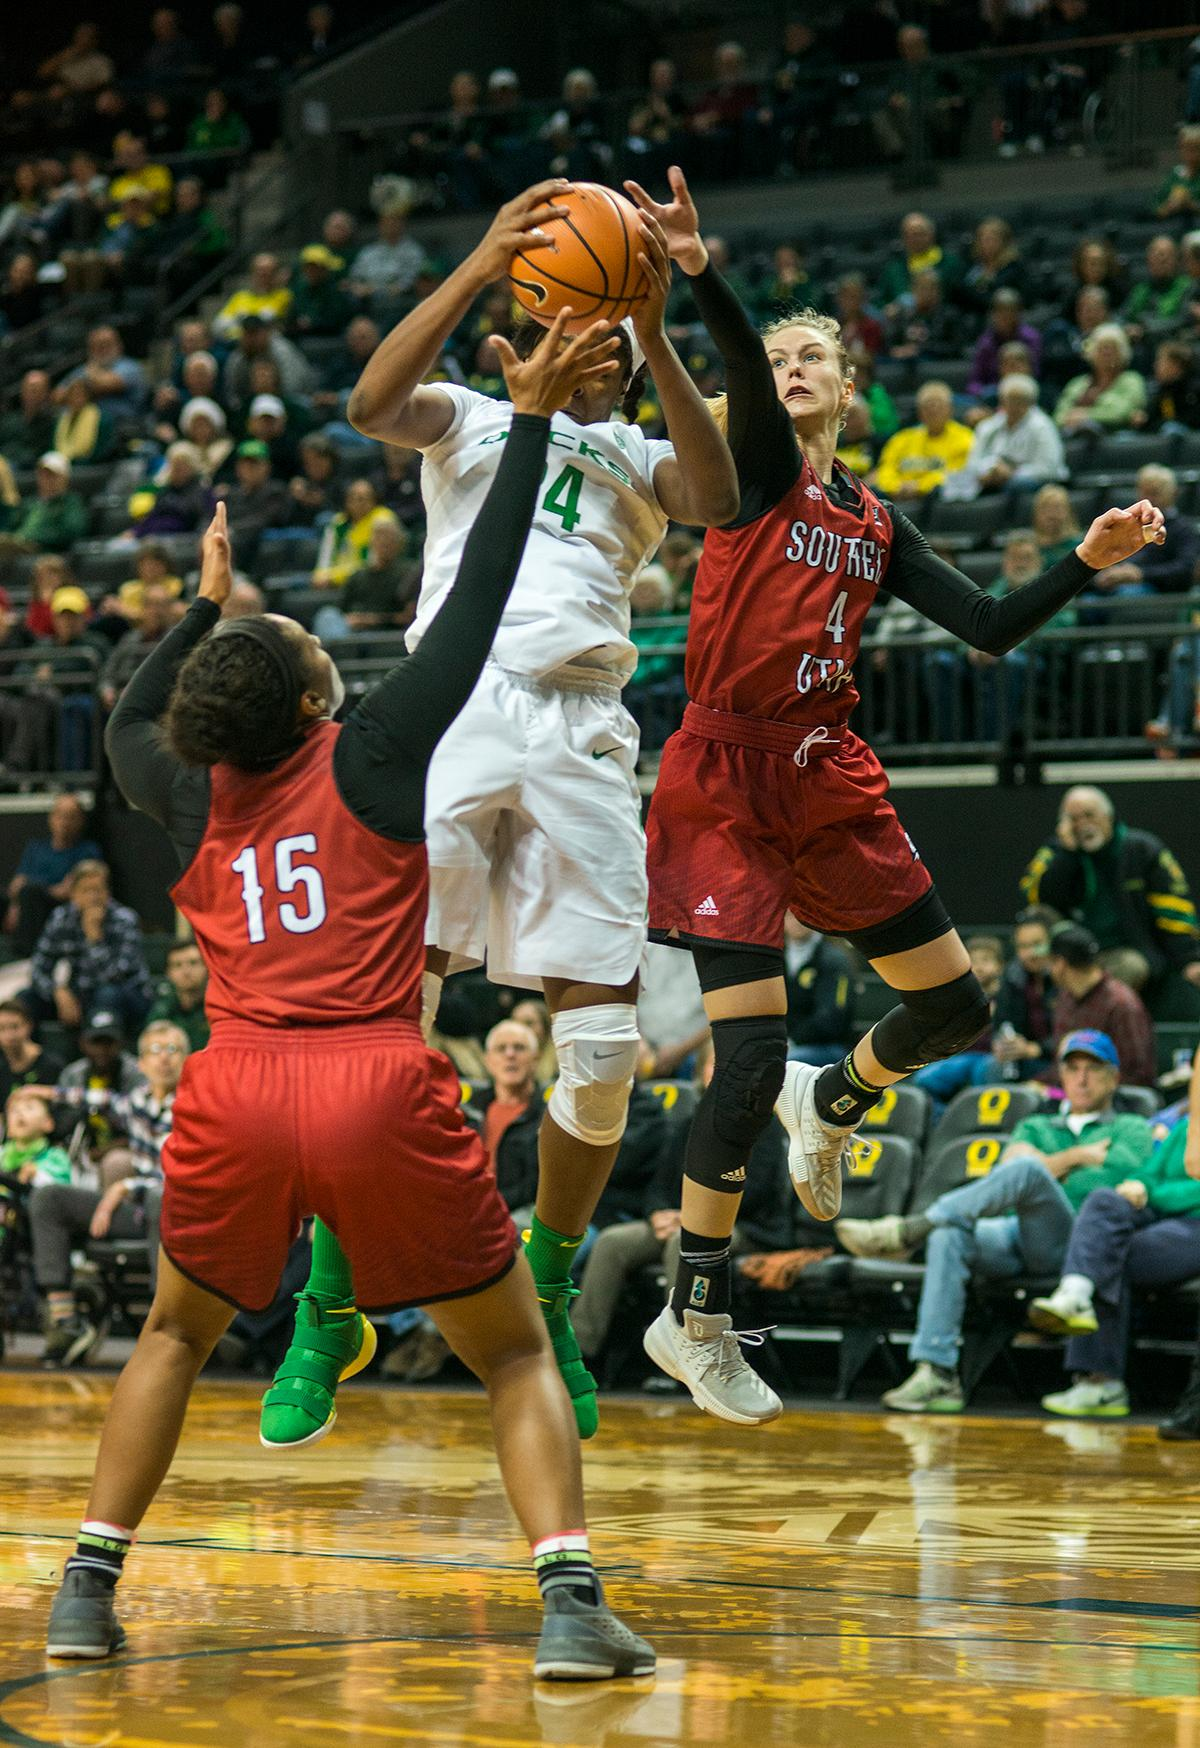 Oregon Ducks Ruthy Heard (#24) attempts to keep control of the ball. The University of Oregon Ducks women basketball team defeated the Southern Utah Thunderbirds 98-38 in Matthew Knight Arena Saturday afternoon. The Ducks had four players in double-digits: Ruthy Hebard with 13; Mallory McGwire with 10; Lexi Bando with 17 which included four three-pointers; and Sabrina Ionescu with 16 points. The Ducks overwhelmed the Thunderbirds, shooting 50% in field goals to South Utah's 26.8%, 53.8% in three-pointers to 12.5%, and 85.7% in free throws to 50%. The Ducks, with an overall record of 8-1, and coming into this game ranked 9th, will play their next home game against Ole Miss on December 17. Photo by Rhianna Gelhart, Oregon News Lab